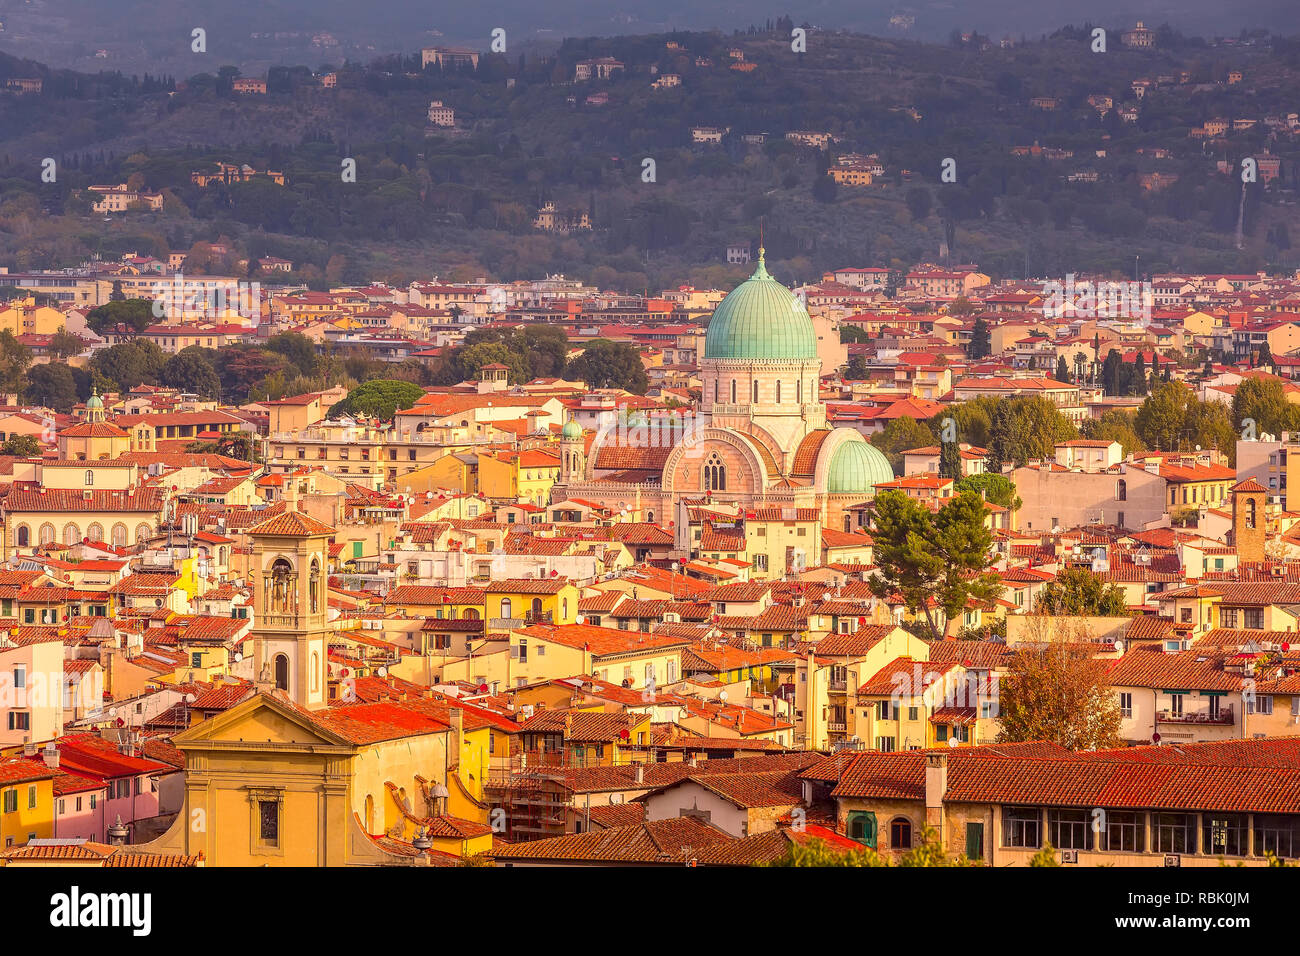 Aerial view of historical medieval buildings with Great Synagogue dome in old town of Florence, Italy Stock Photo